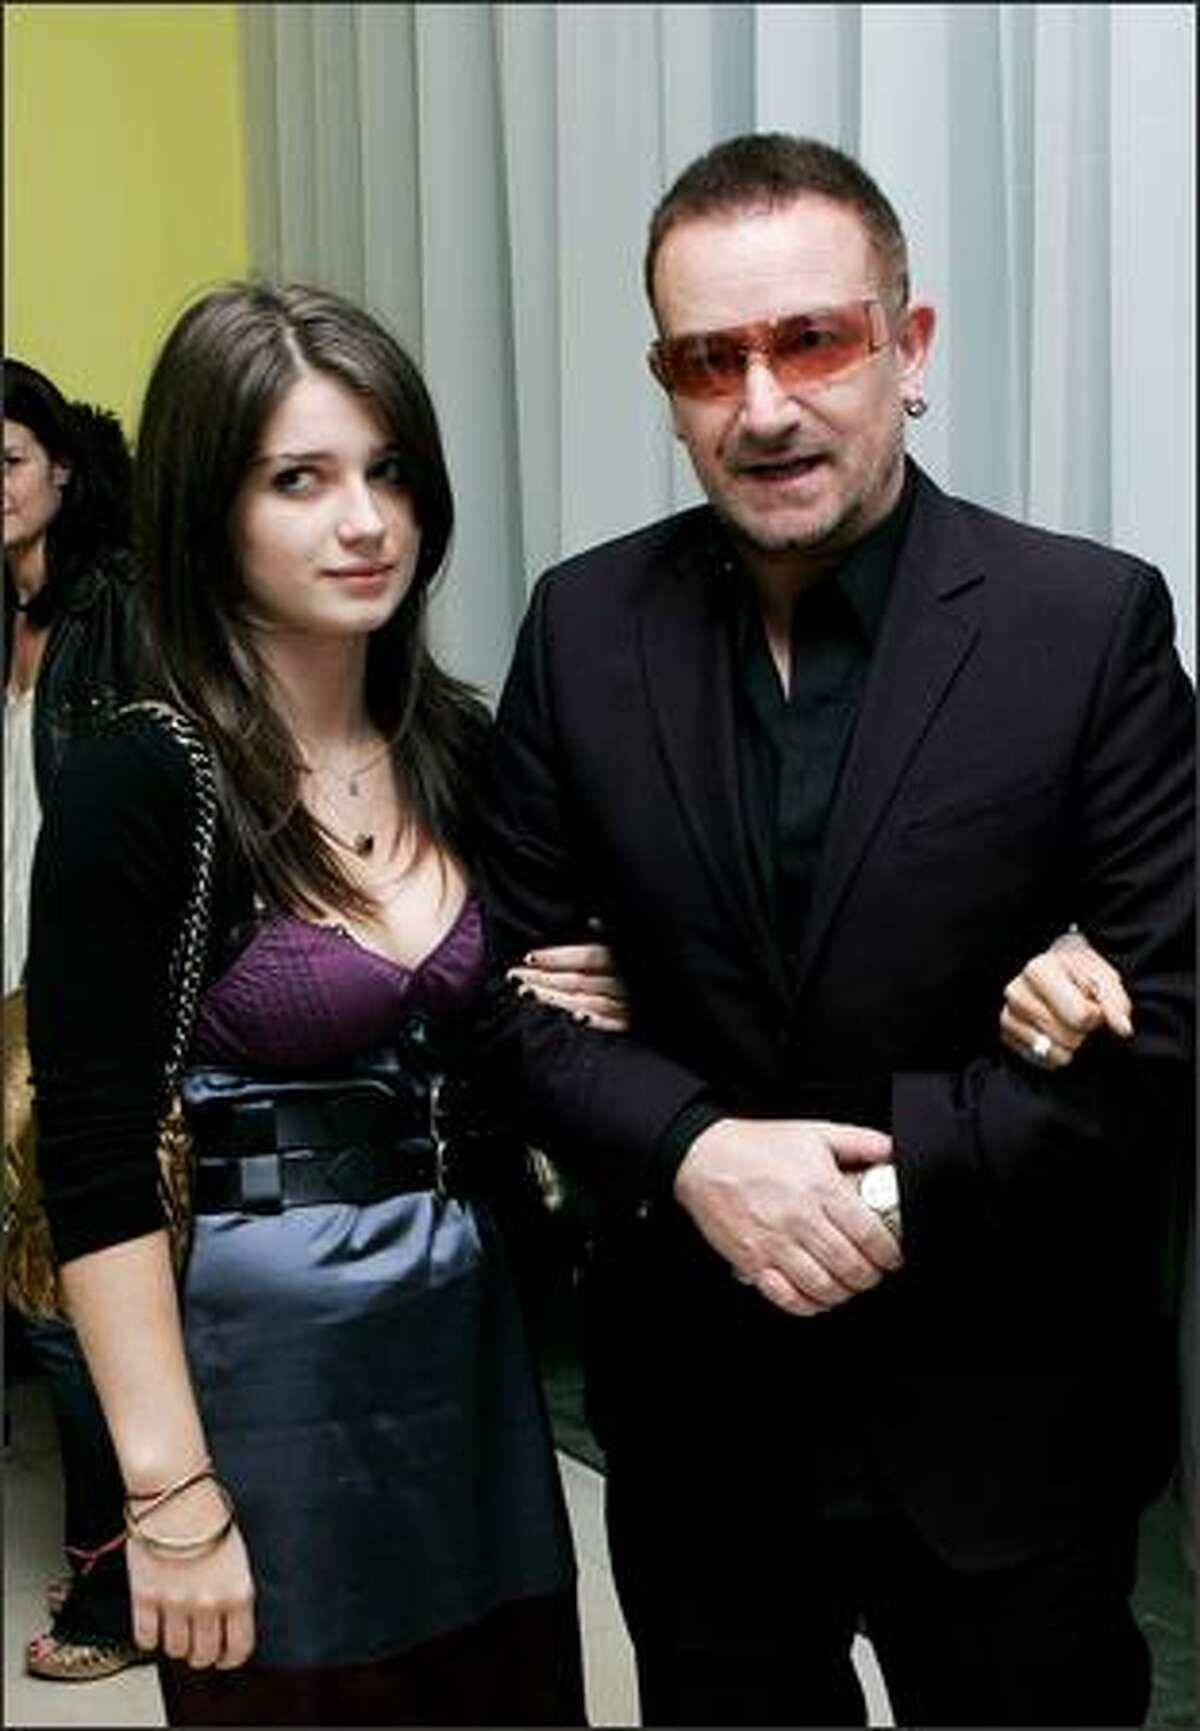 U2 frontman Bono and his guest arrive at the afterparty following